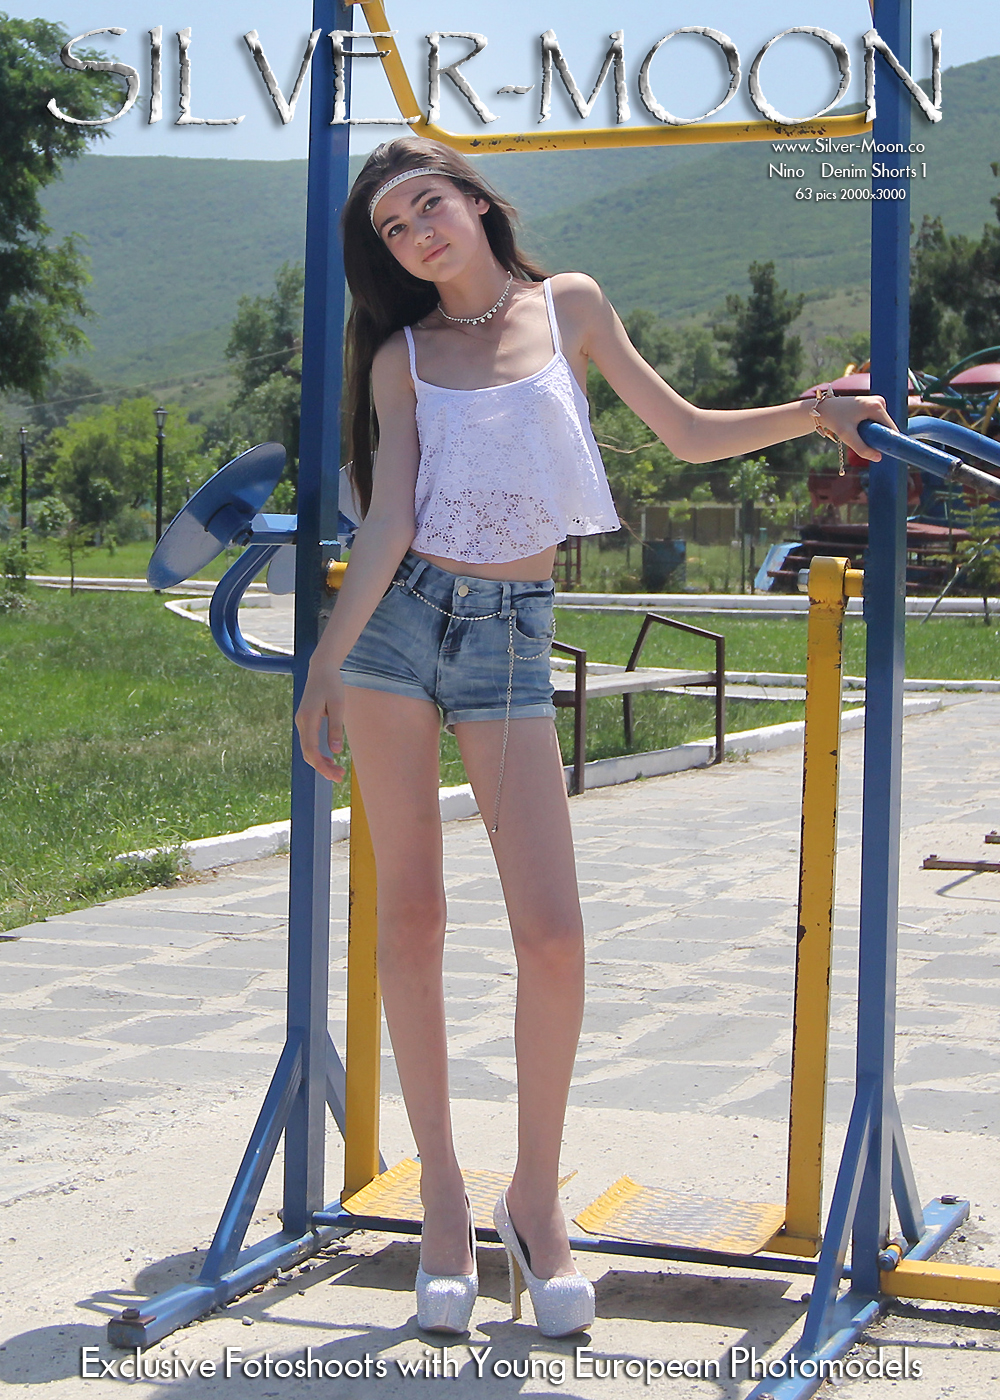 little silver cougars dating site Agelesshookupcom is the best age gap dating site for older men younger women, catering specifically to younger women looking for older men and older men dating.